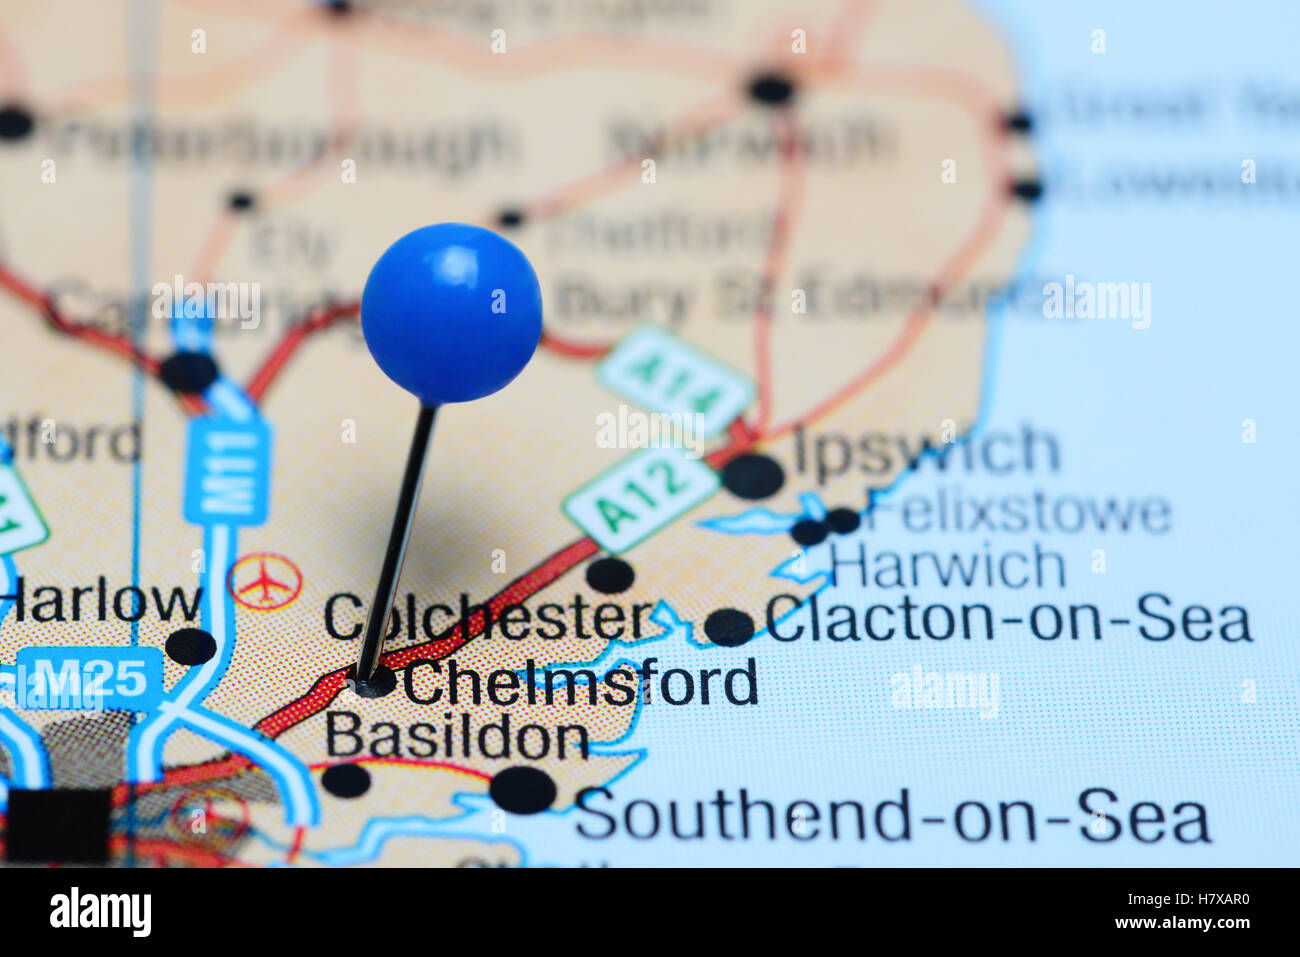 Chelmsford pinned on a map of UK - Stock Image